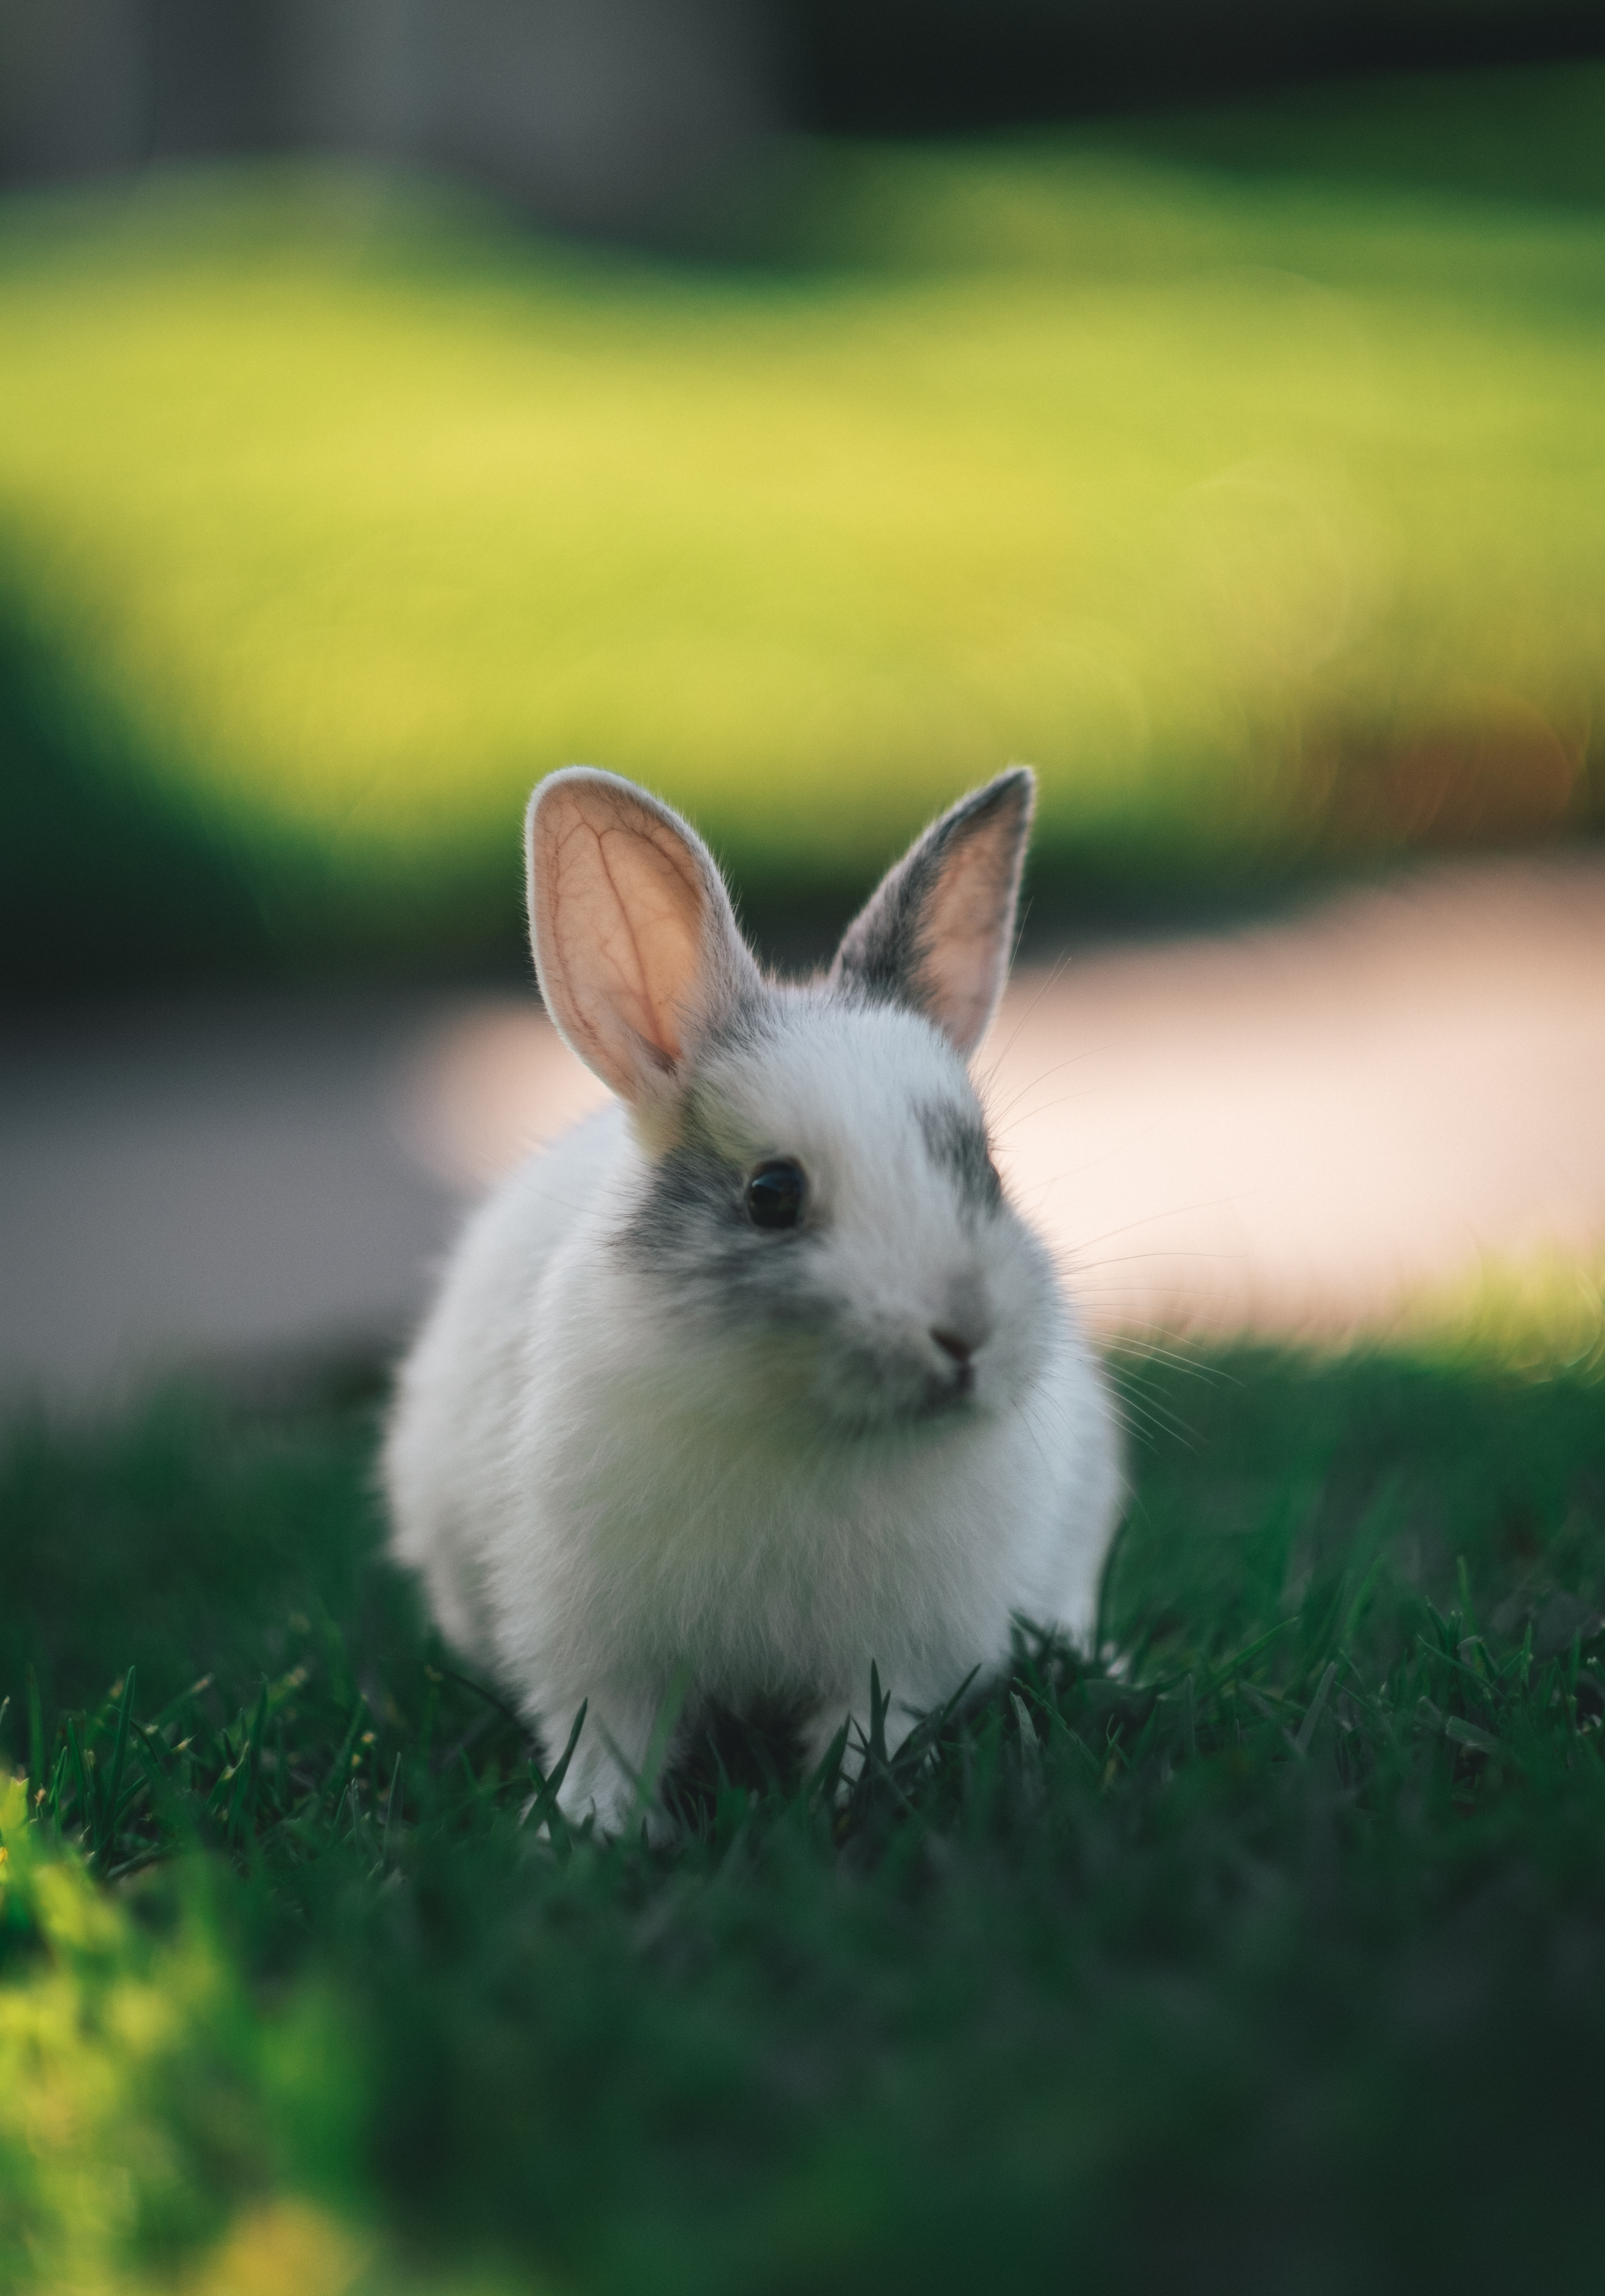 144099 download wallpaper Animals, Rabbit, Nice, Sweetheart, Fluffy, Grass screensavers and pictures for free